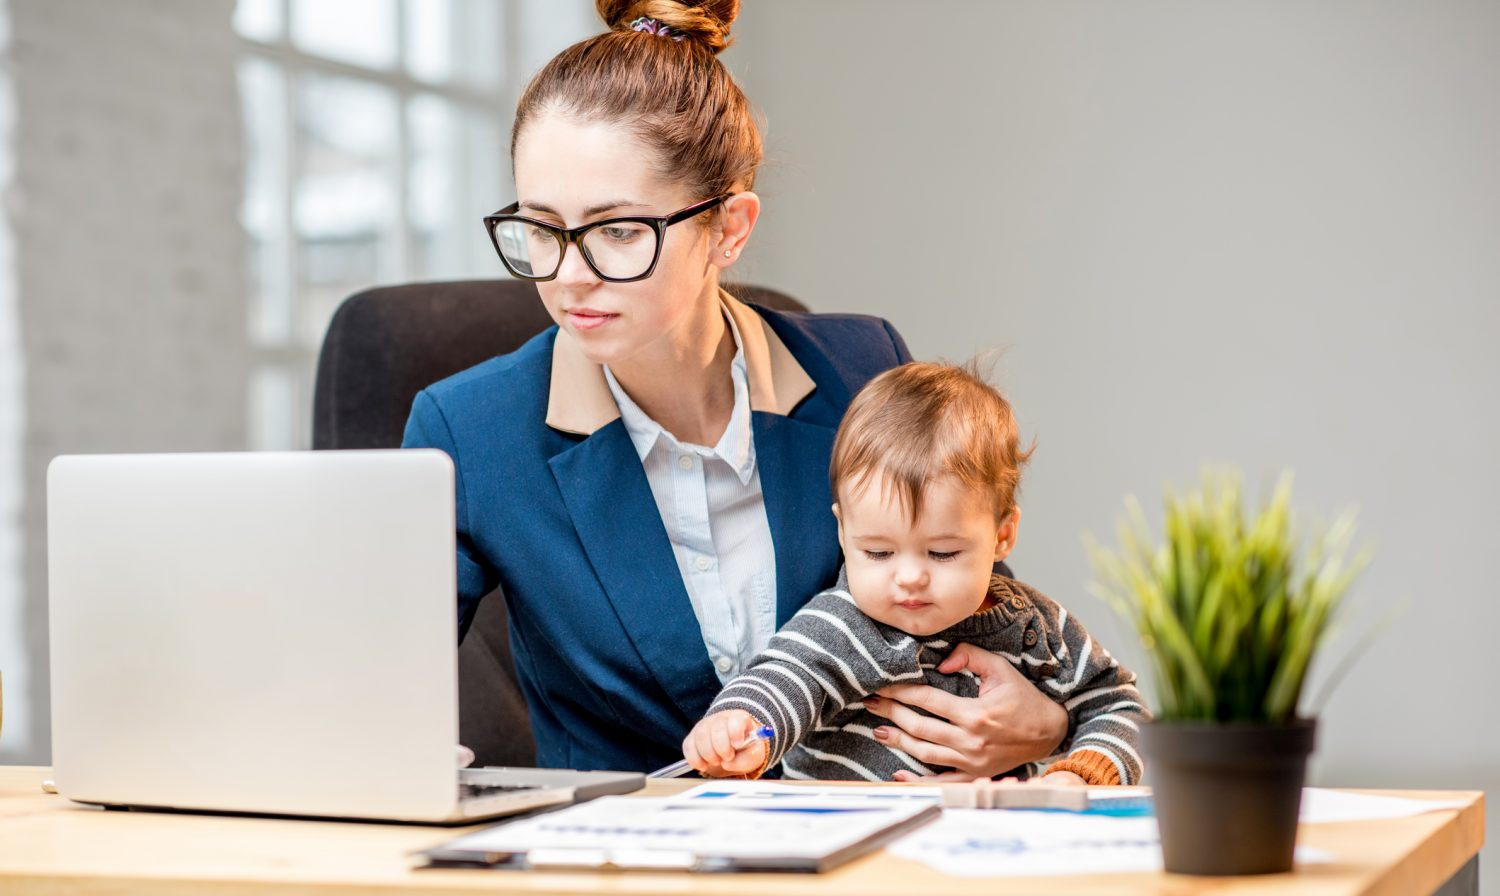 The Struggle Of Returning To Work After Maternity Leave